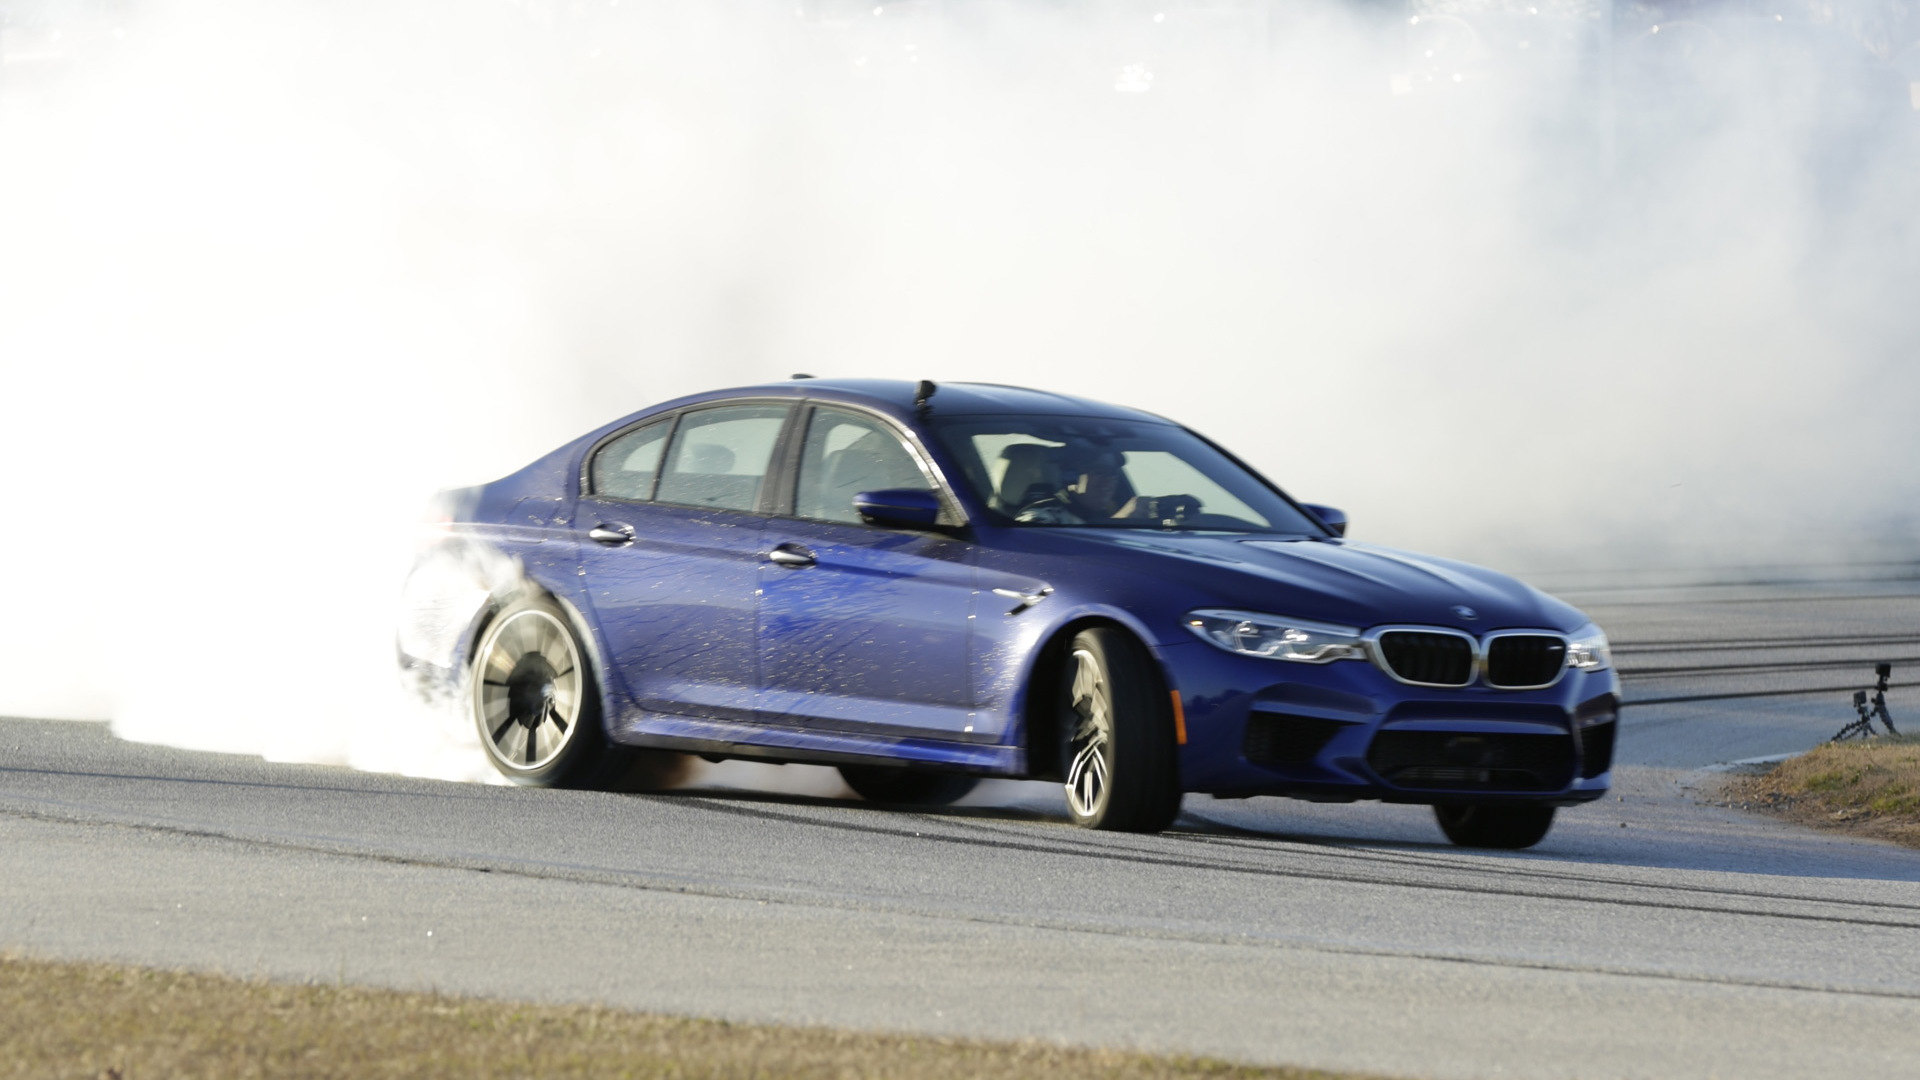 2018 BMW M5 refueling during longest continuous vehicle drift attempt